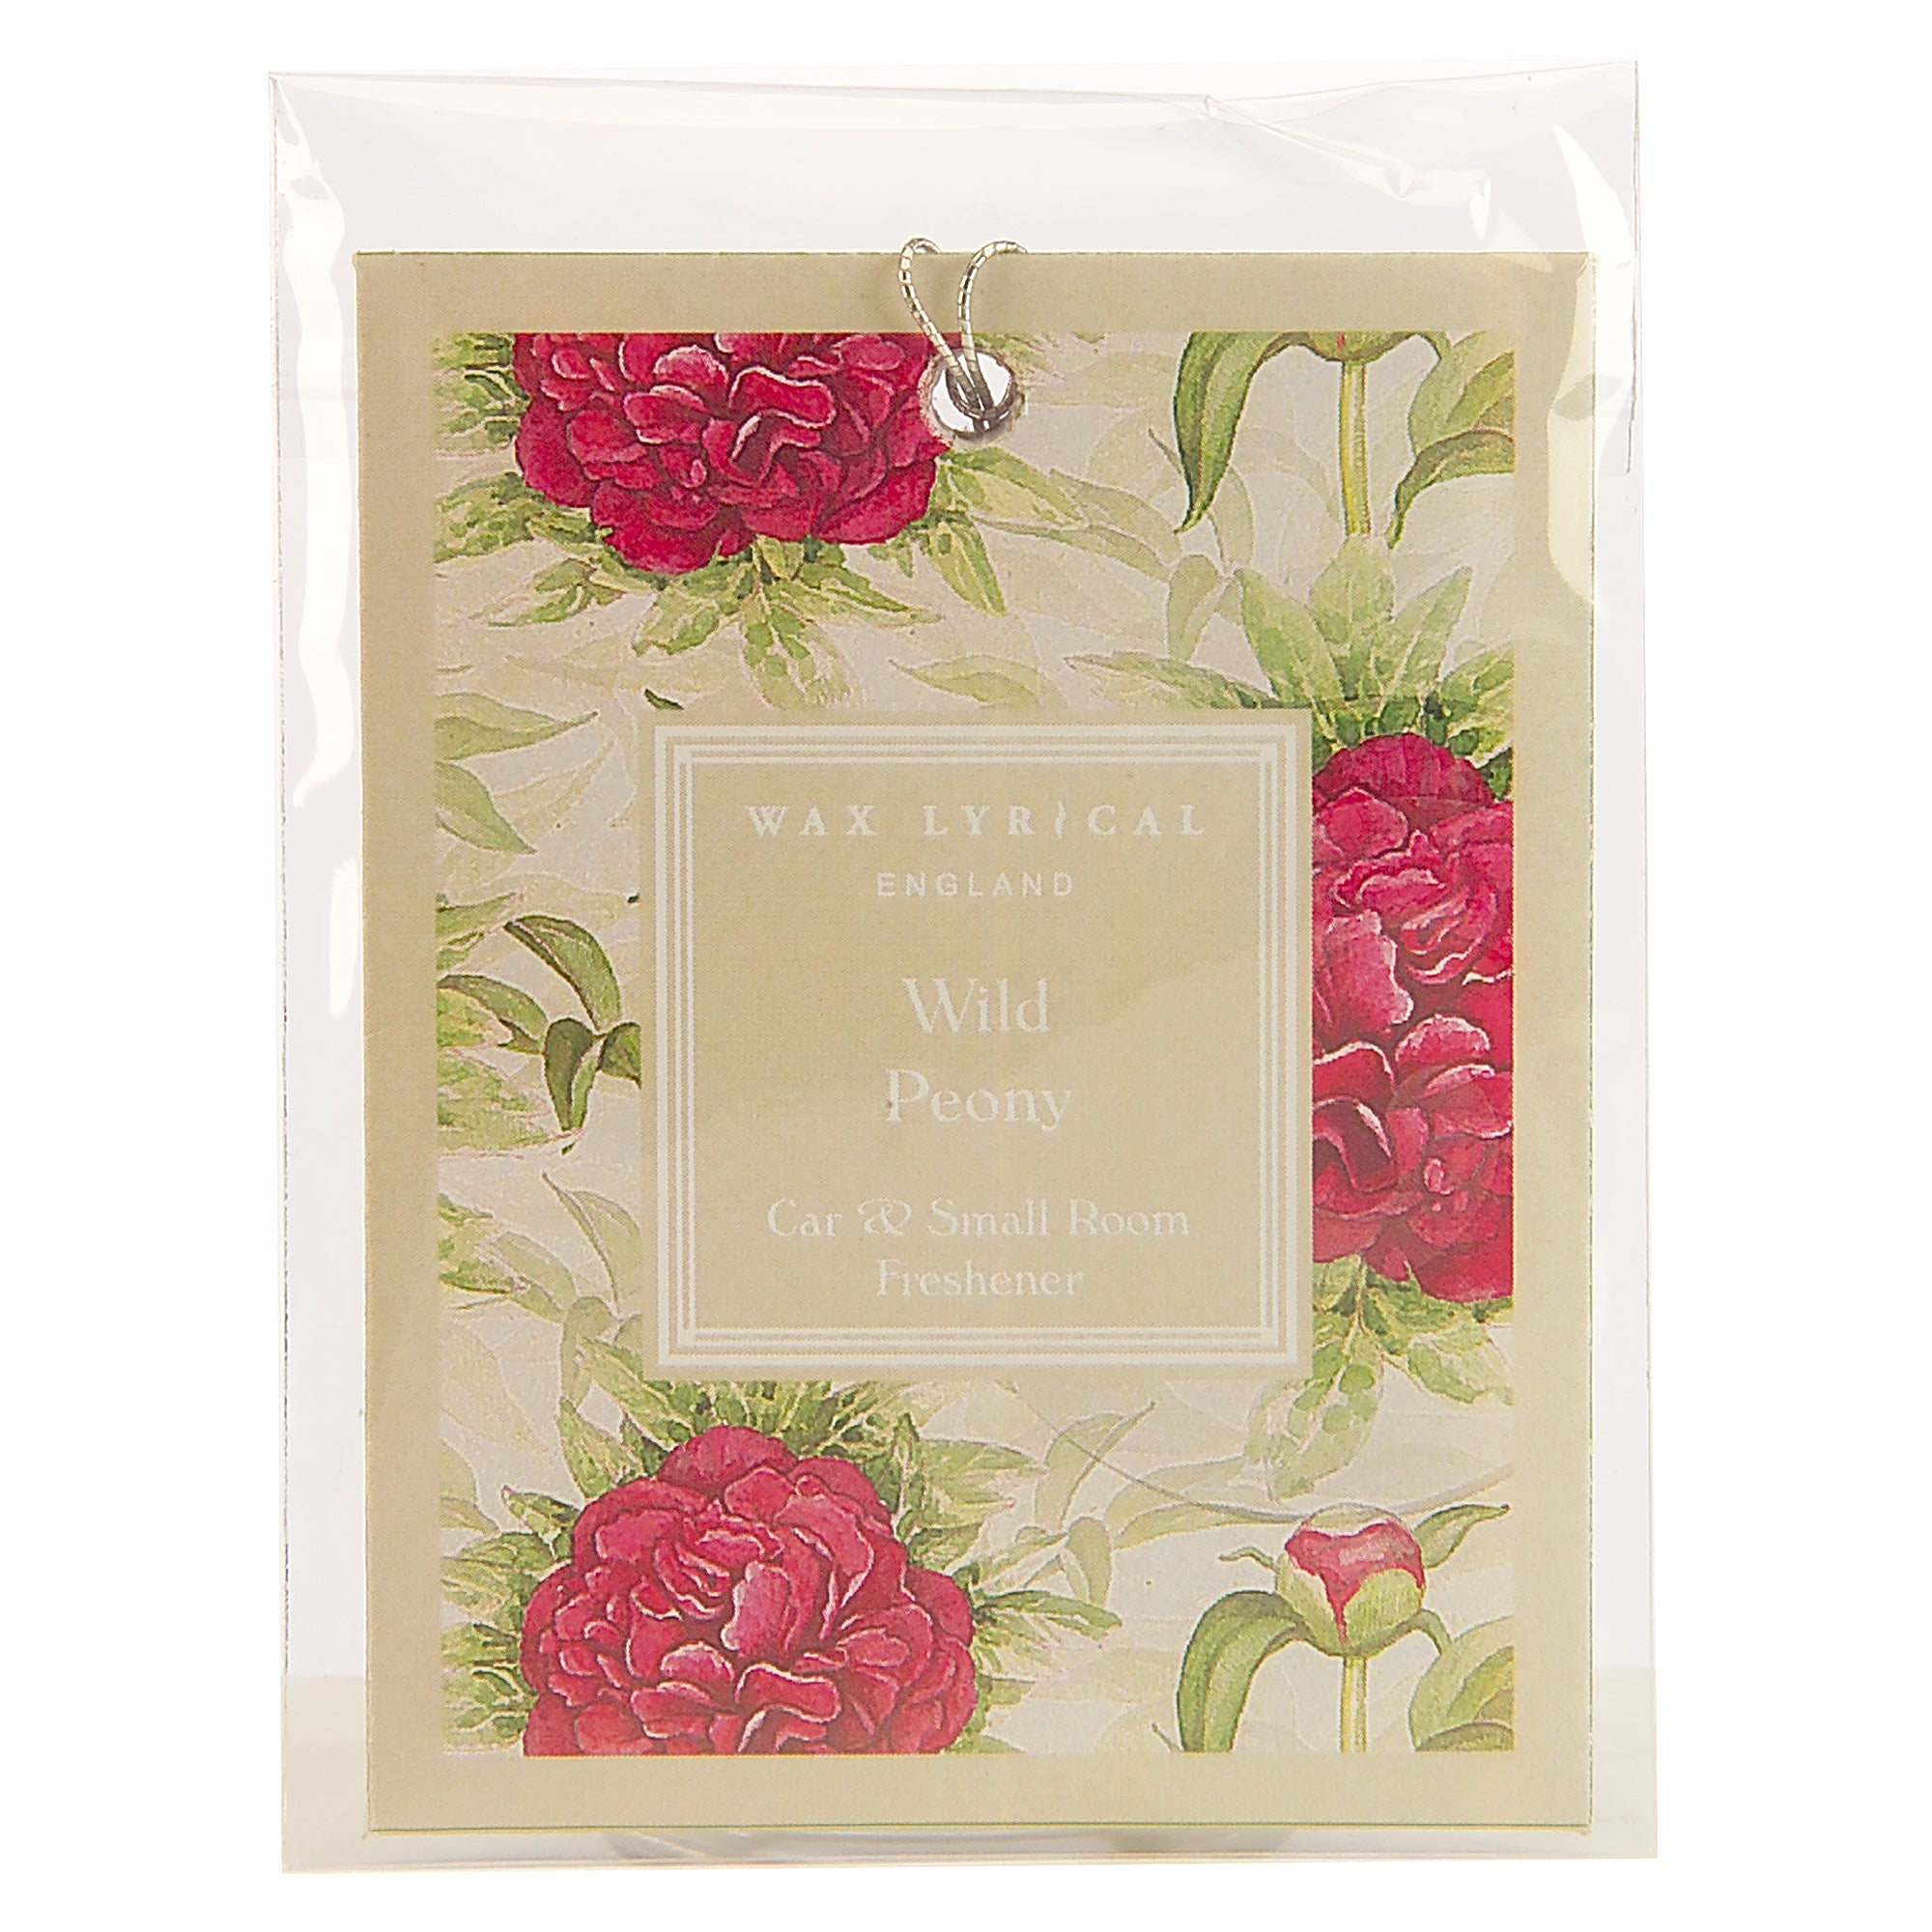 Wax Lyrical Peony Scented Sachet